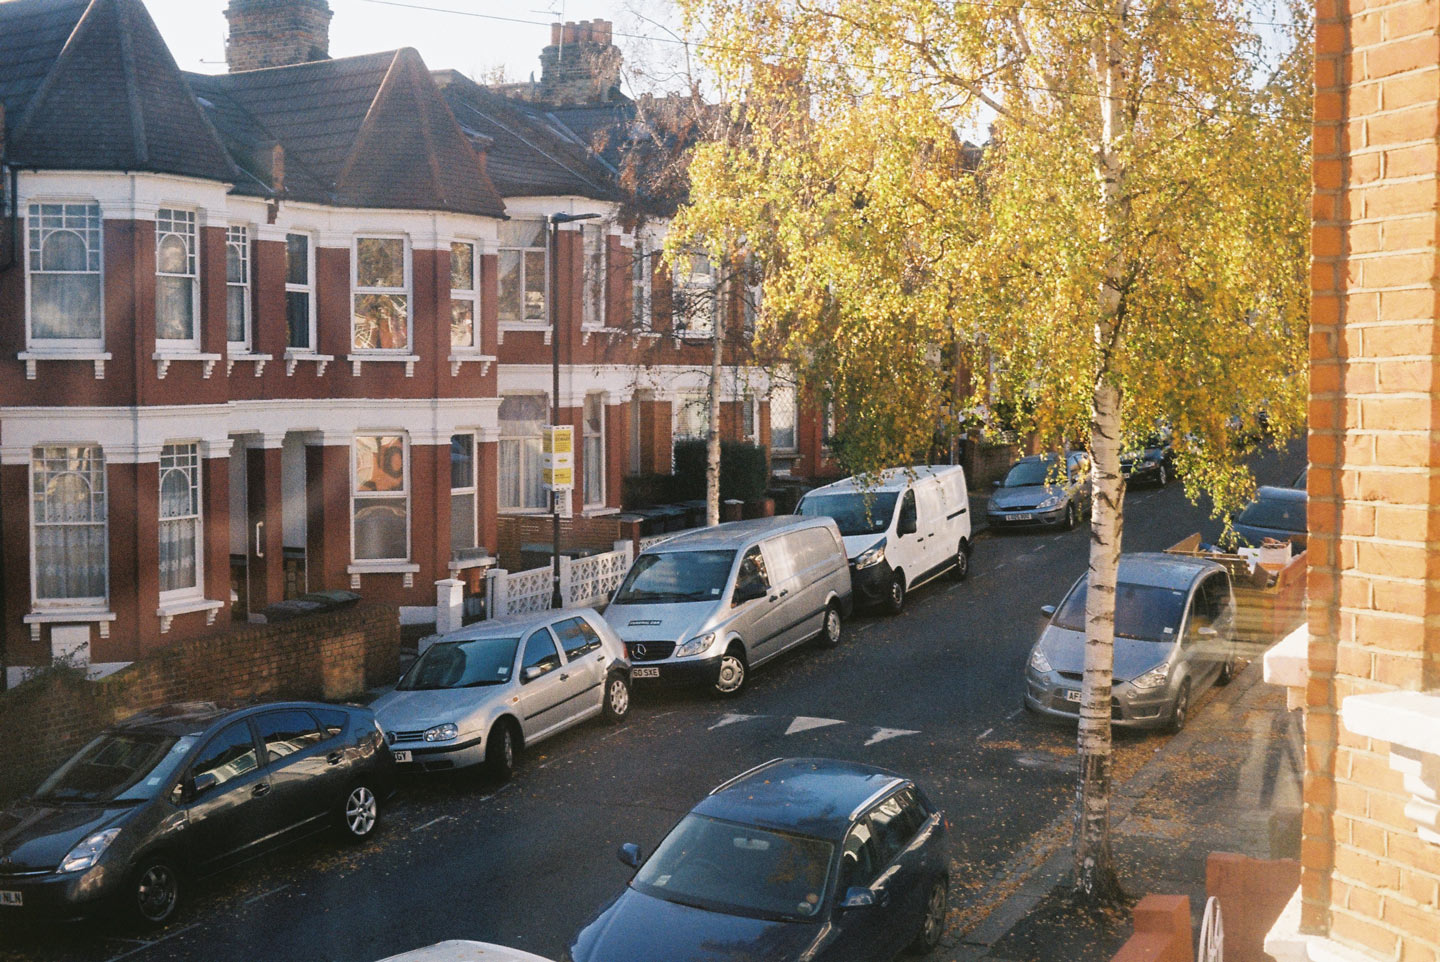 What I see from my window: The Harringay Ladder, North London